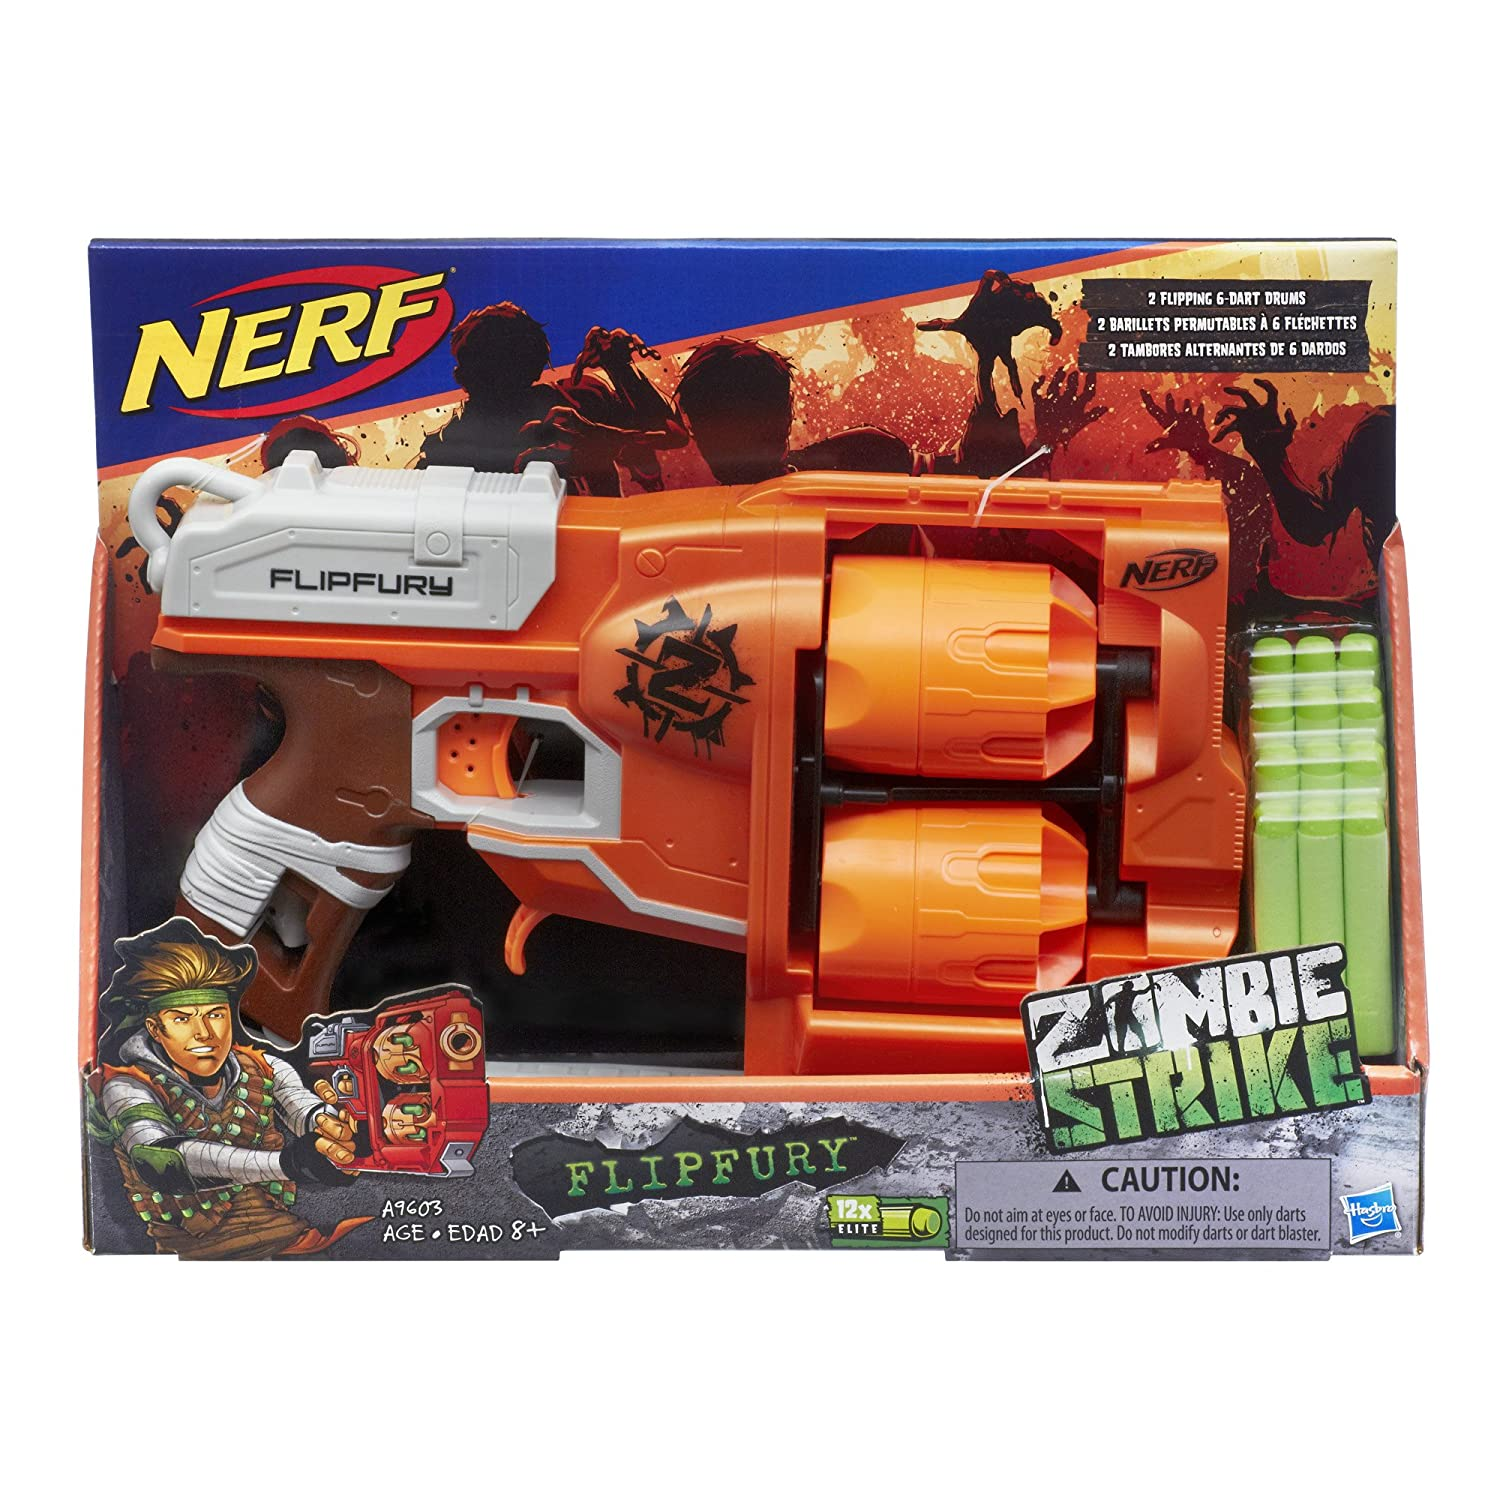 Buy Nerf Zombie Strike Flipfury Blaster Toy For Kids Multi Color line at Low Prices in India Amazon